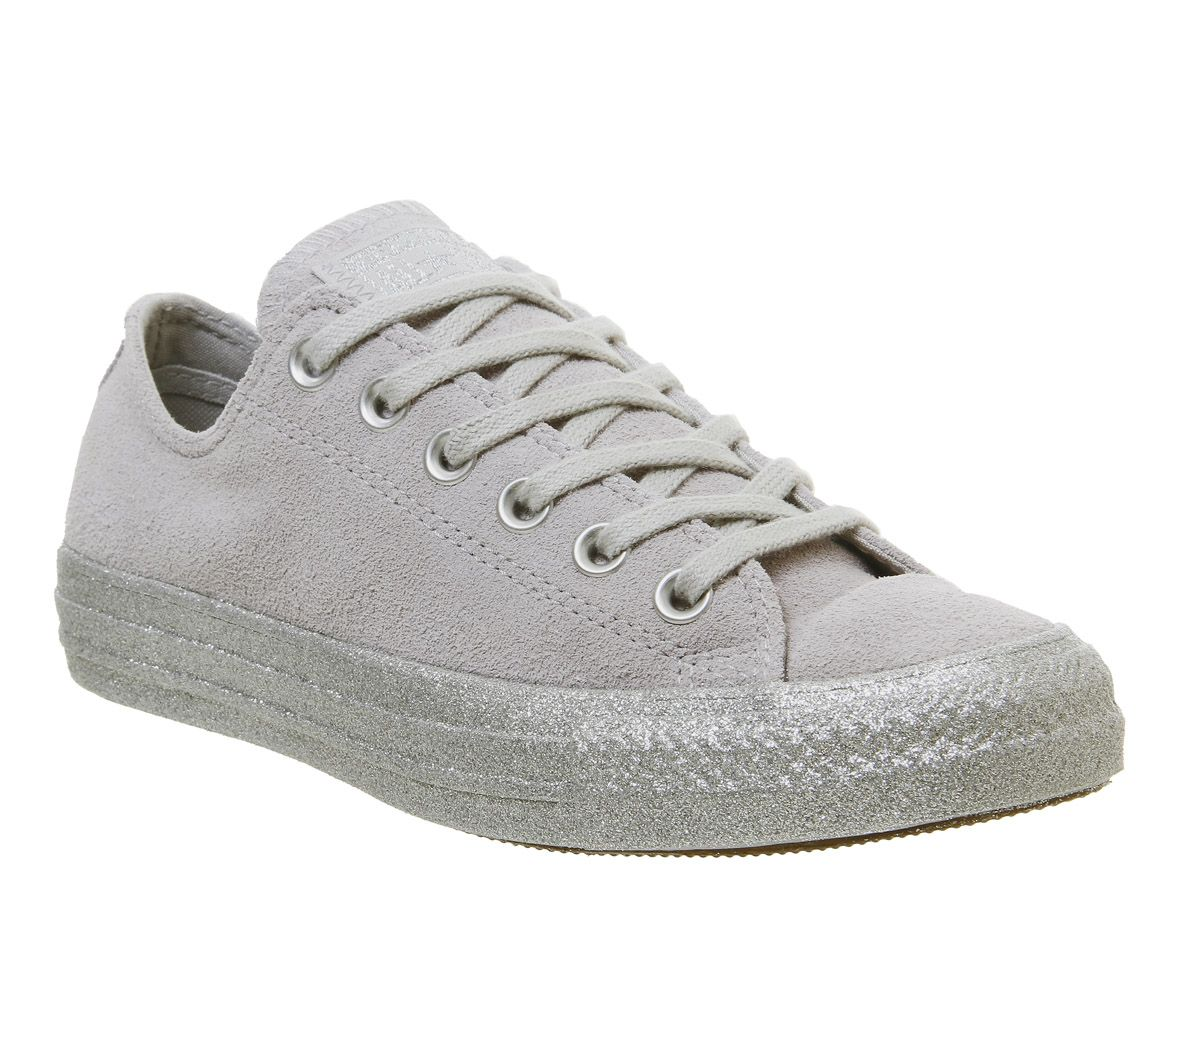 52008ead08bc Converse Converse All Star Low Trainers Ash Grey Silver Glitter ...